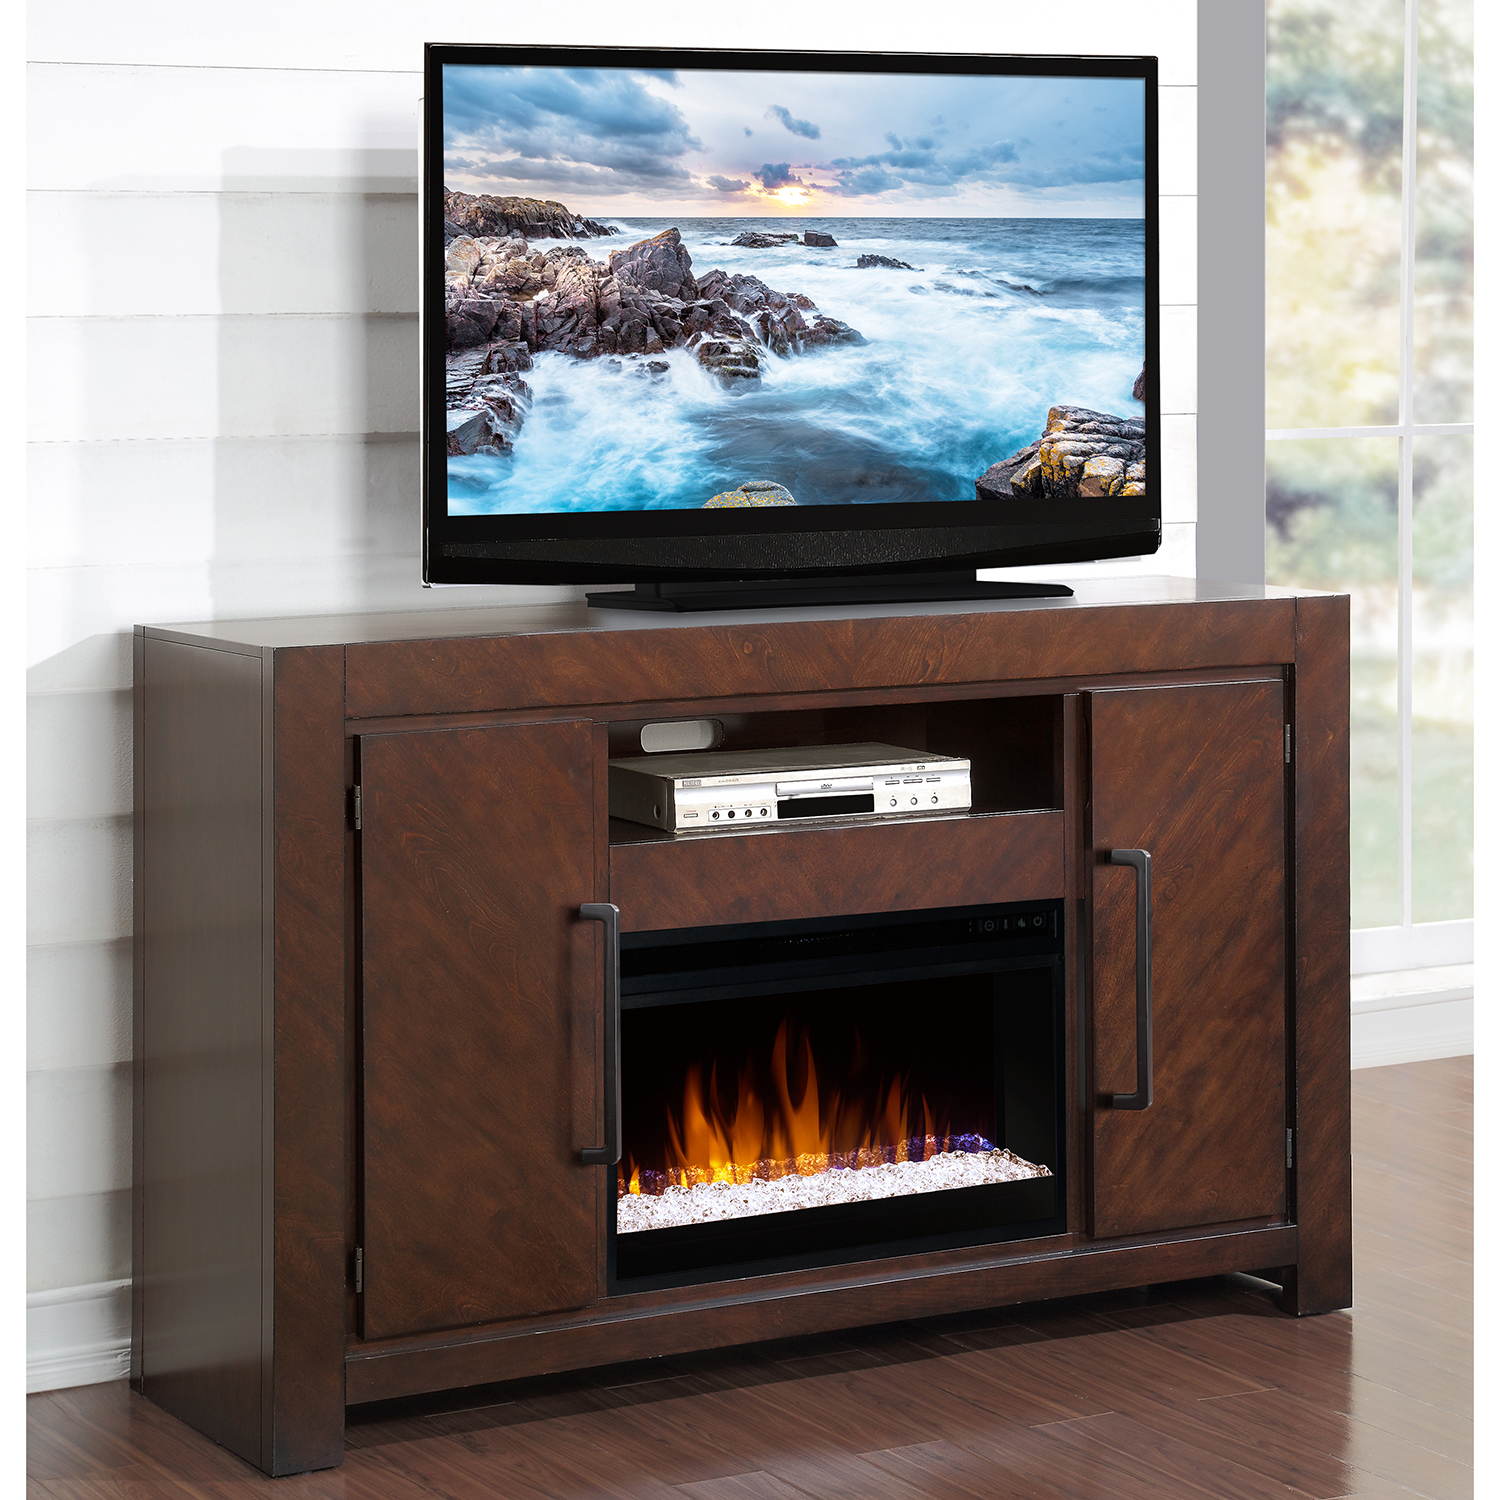 Legends Zctl 1900 City Lights 61 Quot Fireplace Tv Stand